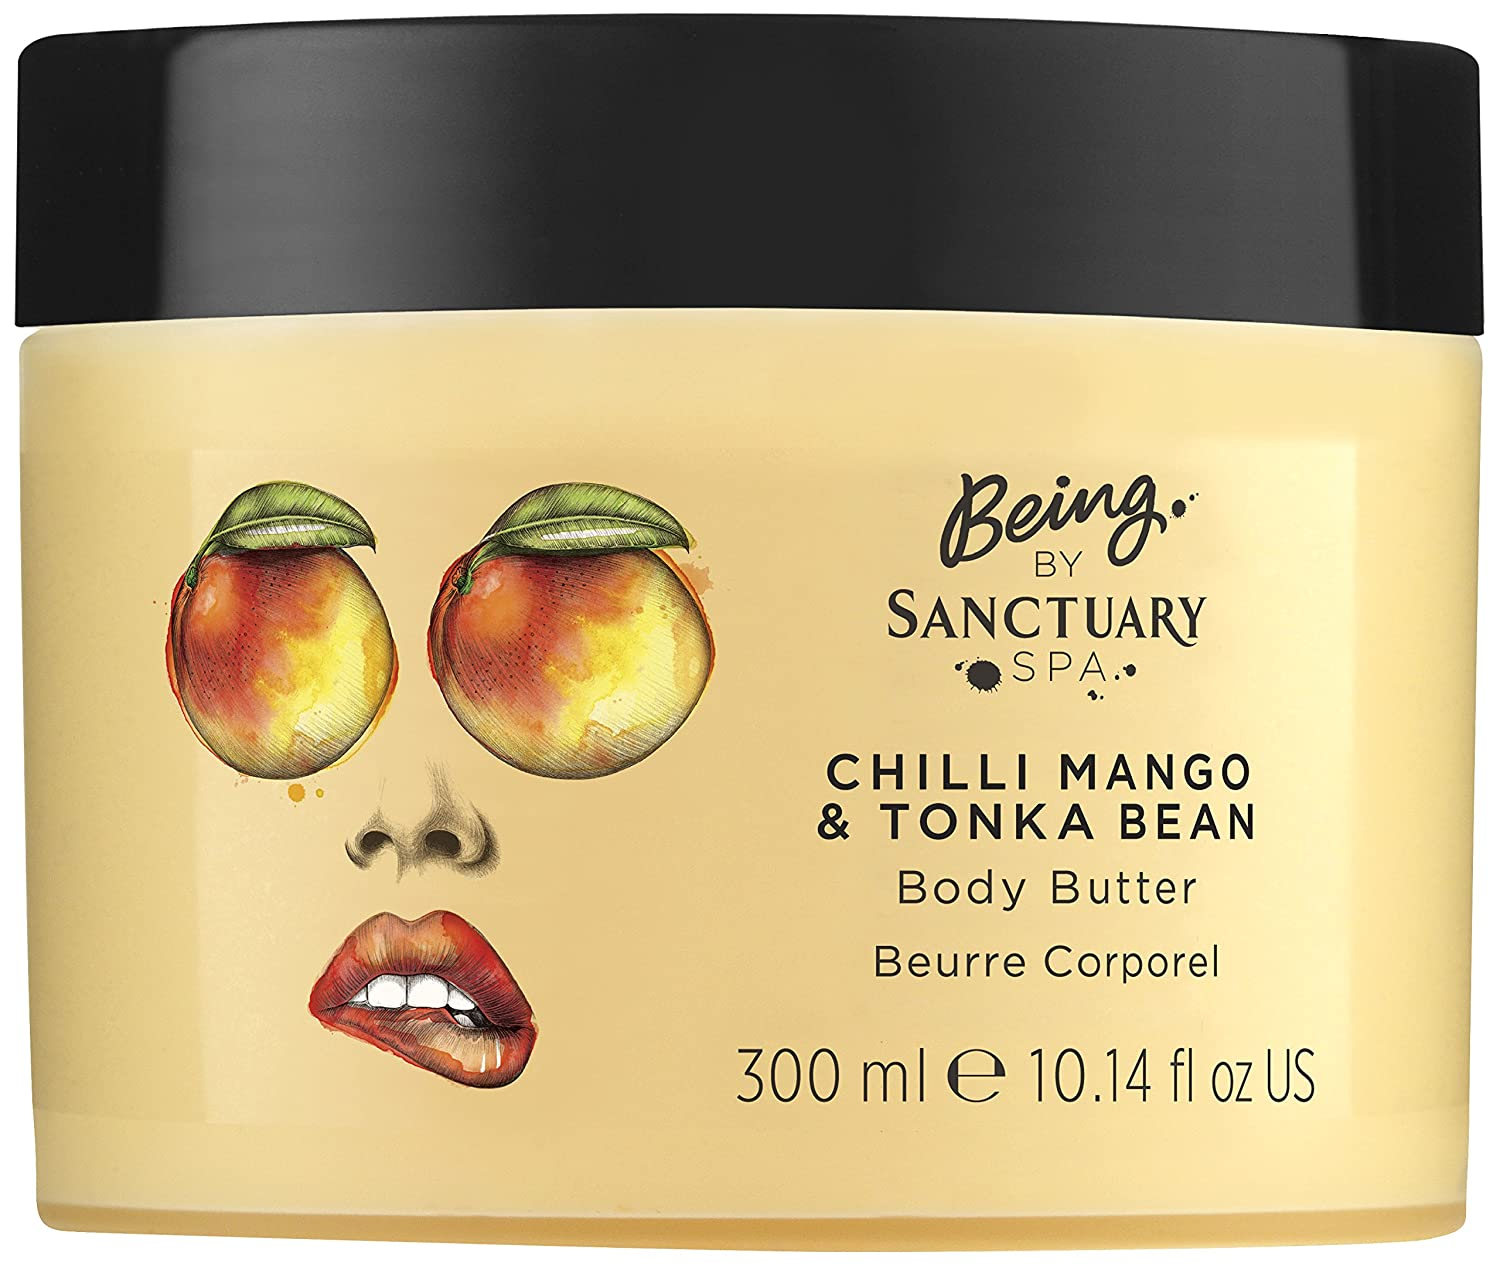 Being by Sanctuary Spa Salted Caramel and Macademia Body Butter, 300 ml PZ Cussons Beauty 100102115